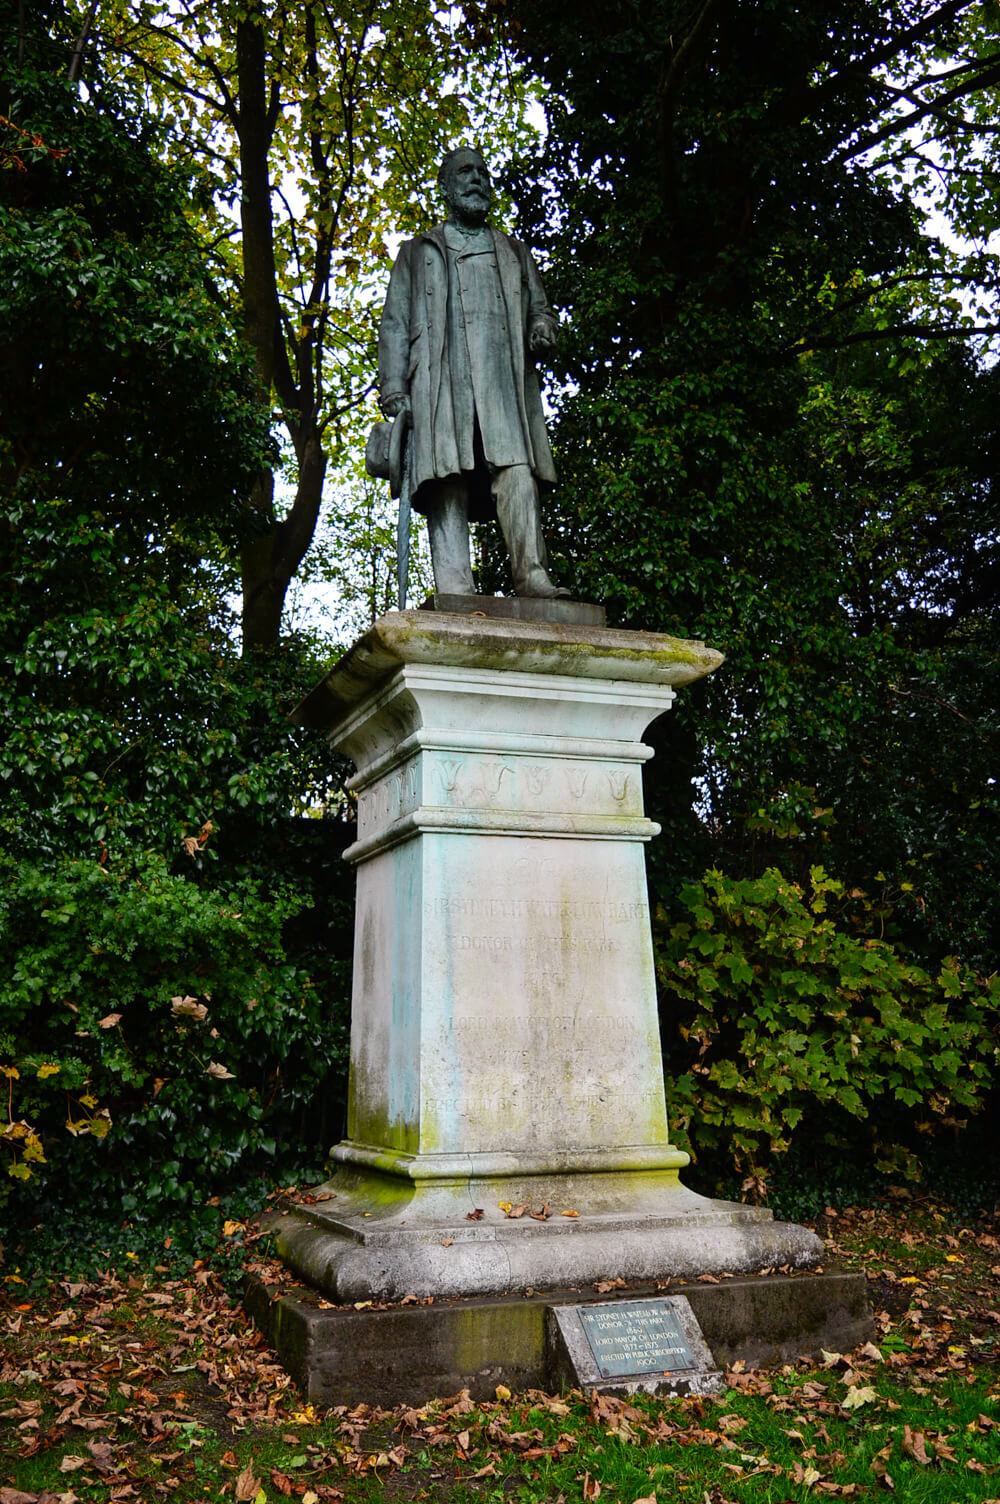 Statue of Sydney H. Waterlow at Waterlow Park, Hampstead, London